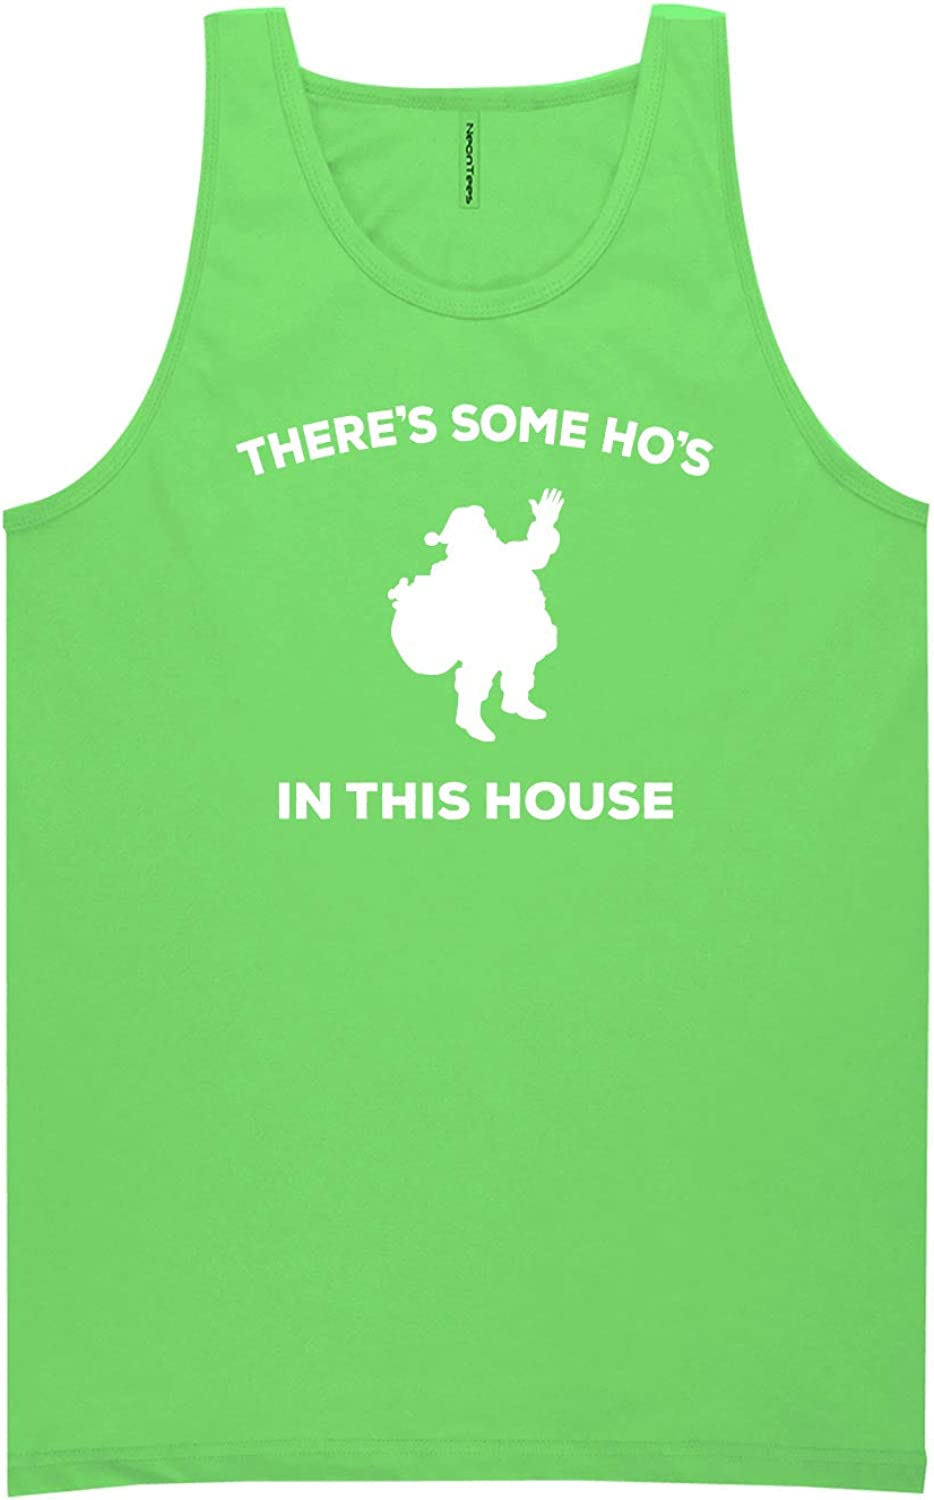 There's Some Ho's in This House Neon Green Tank Top - XX-Large